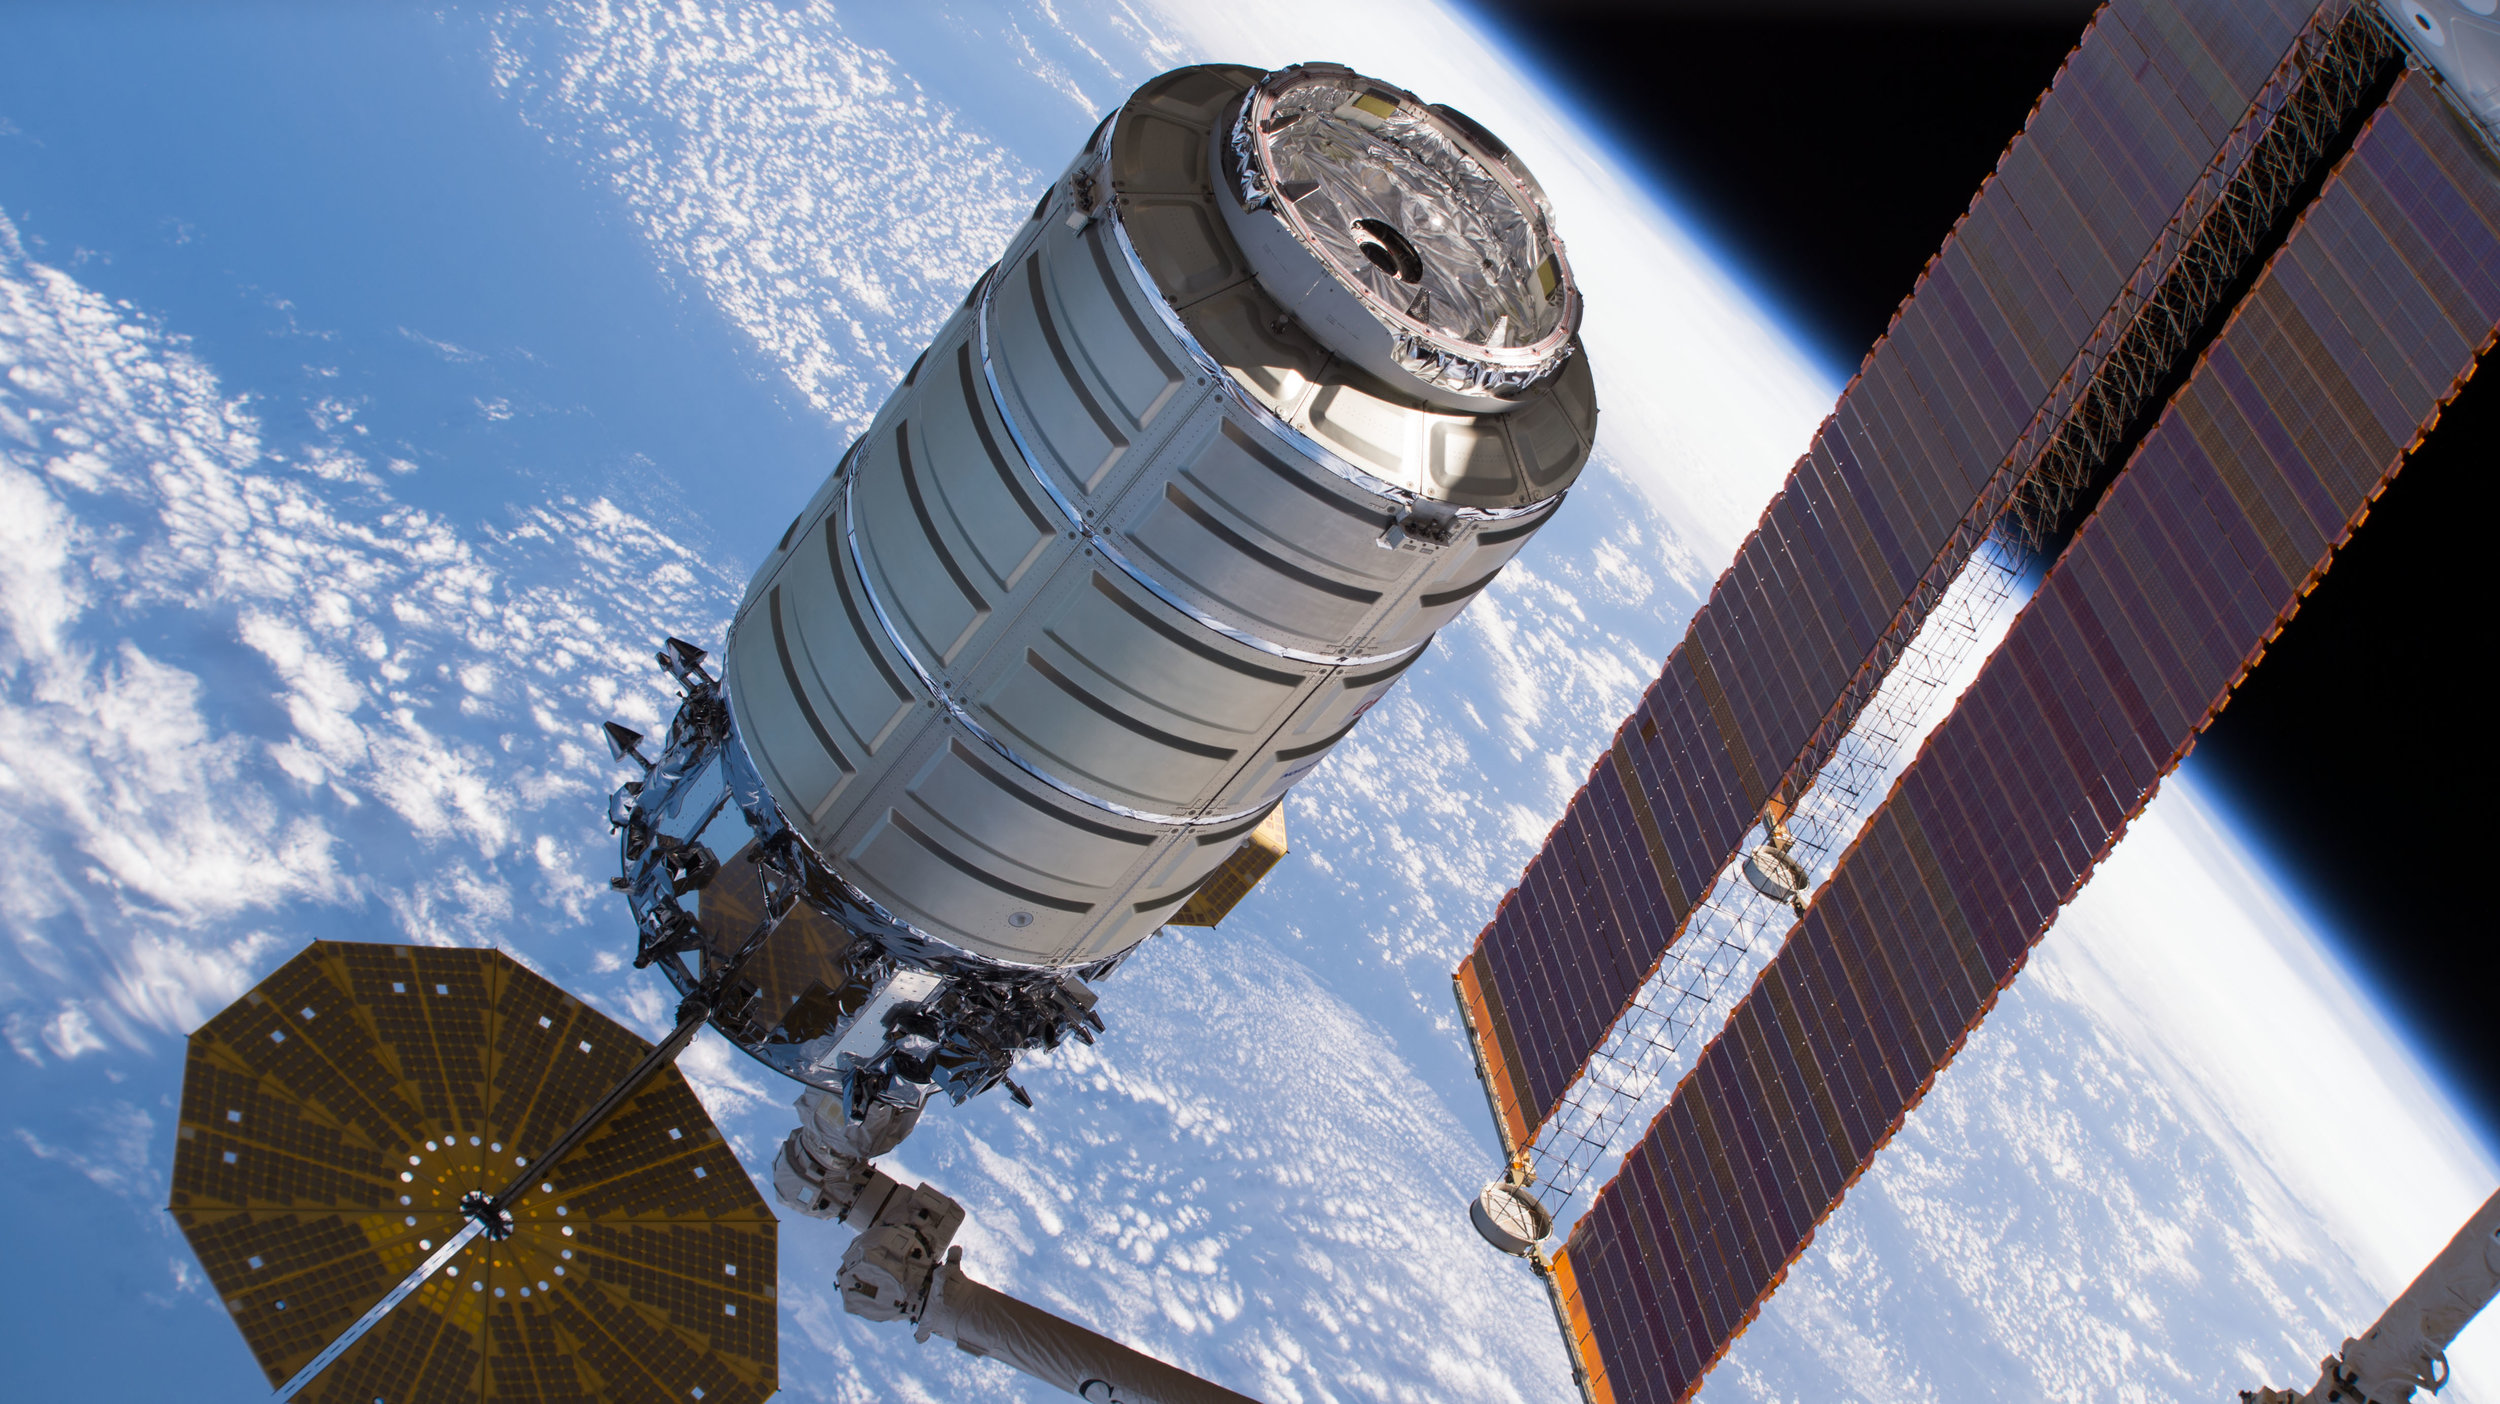 A file photo of a previous Cygnus spacecraft being captured at the International Space Station. The NG-11 Cygnus arrived at the outpost on April 19, 2019. Credit: NASA